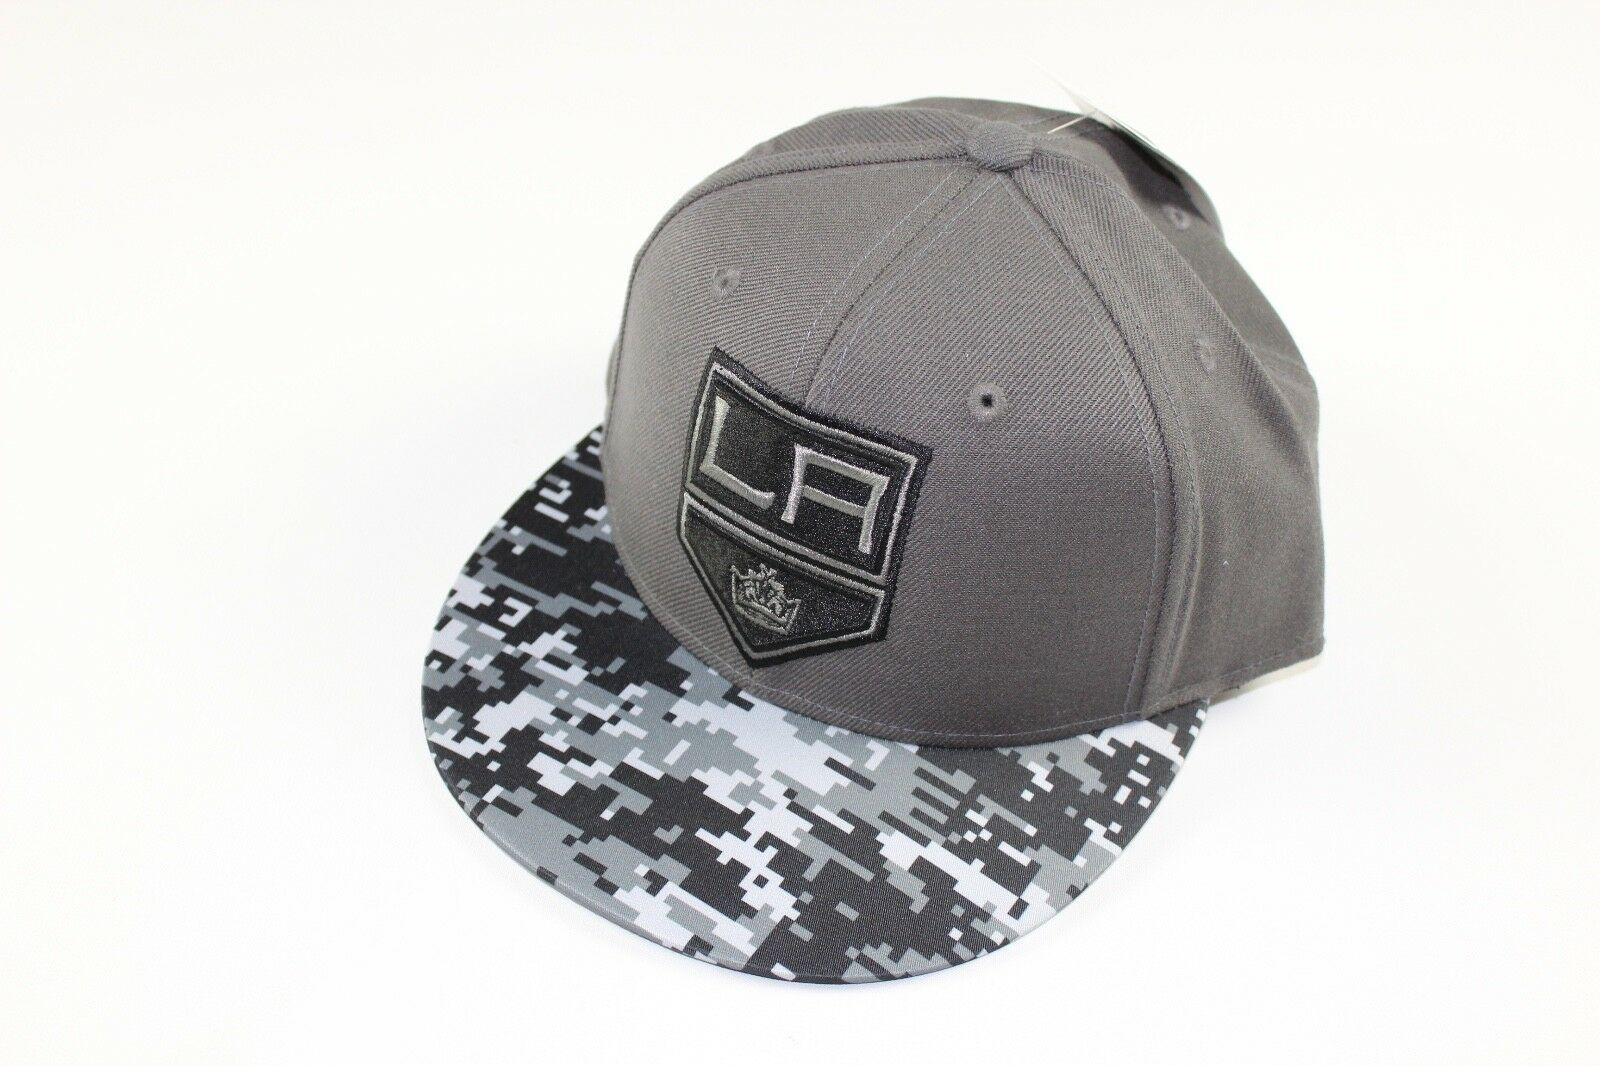 New Adidas Size 7 1/8 Los Angeles Kings NHL Hockey Digital Camouflage Fitted Hat